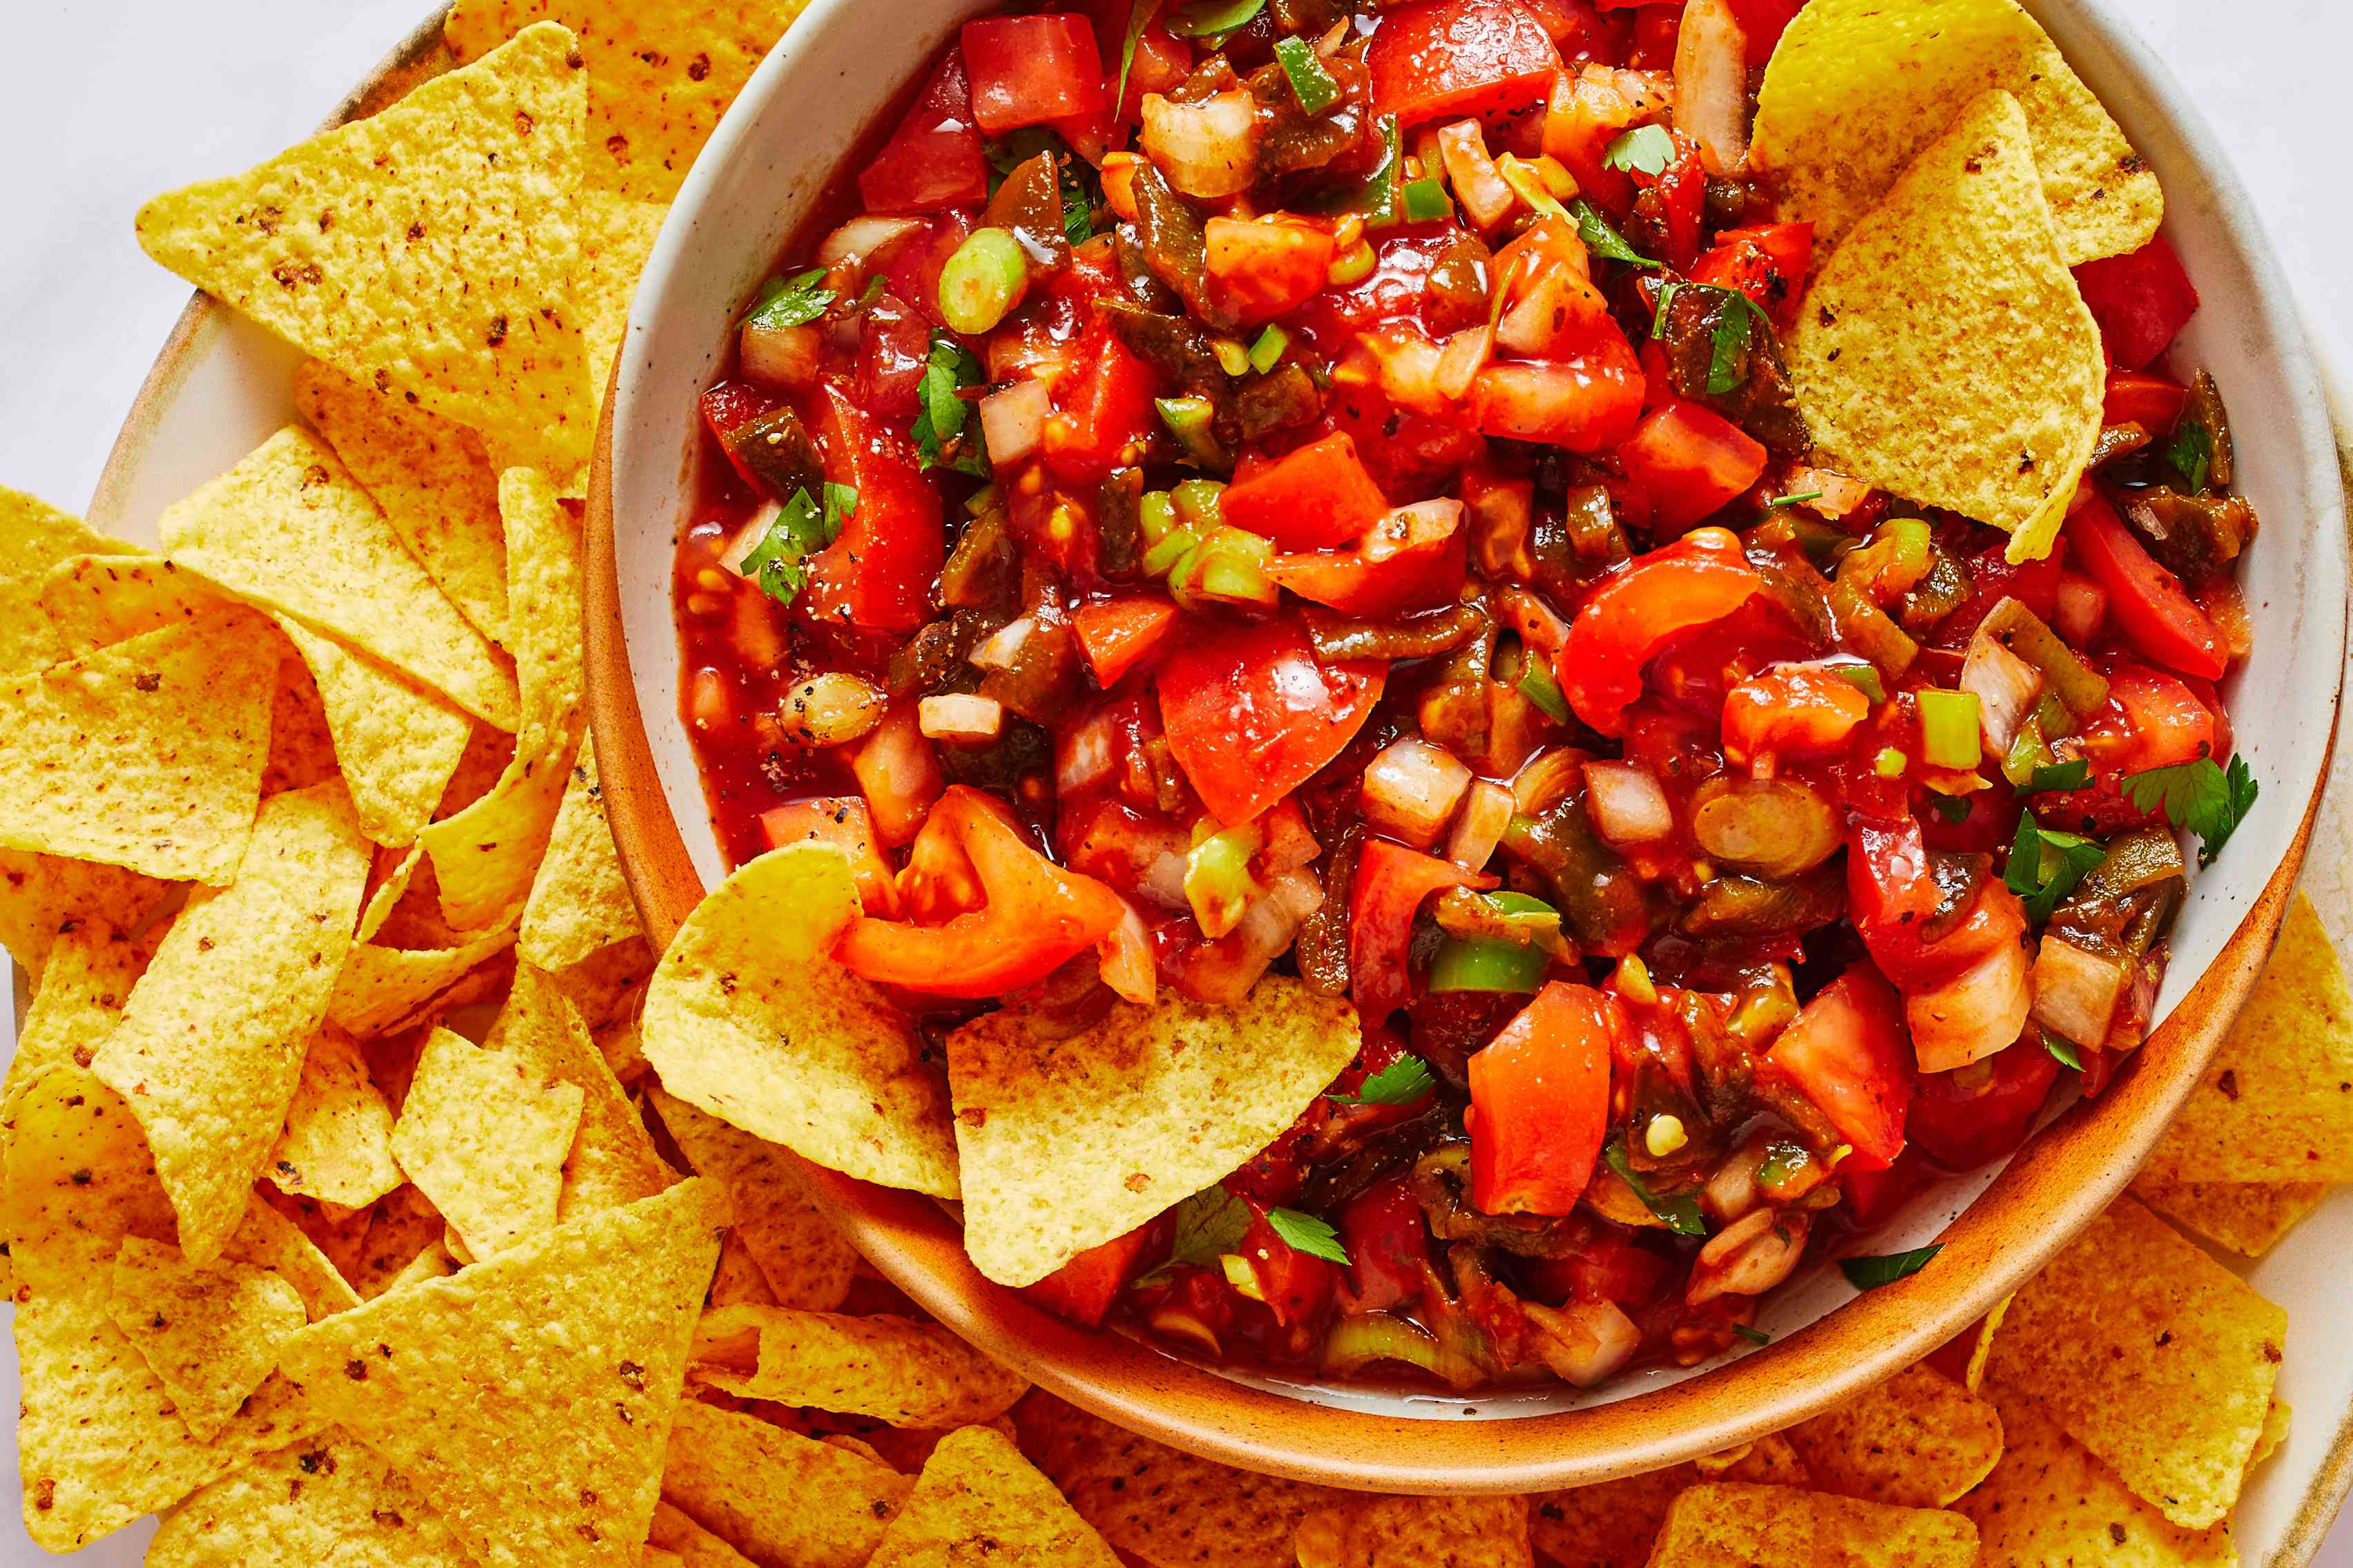 Chunky Homemade Salsa in a bowl